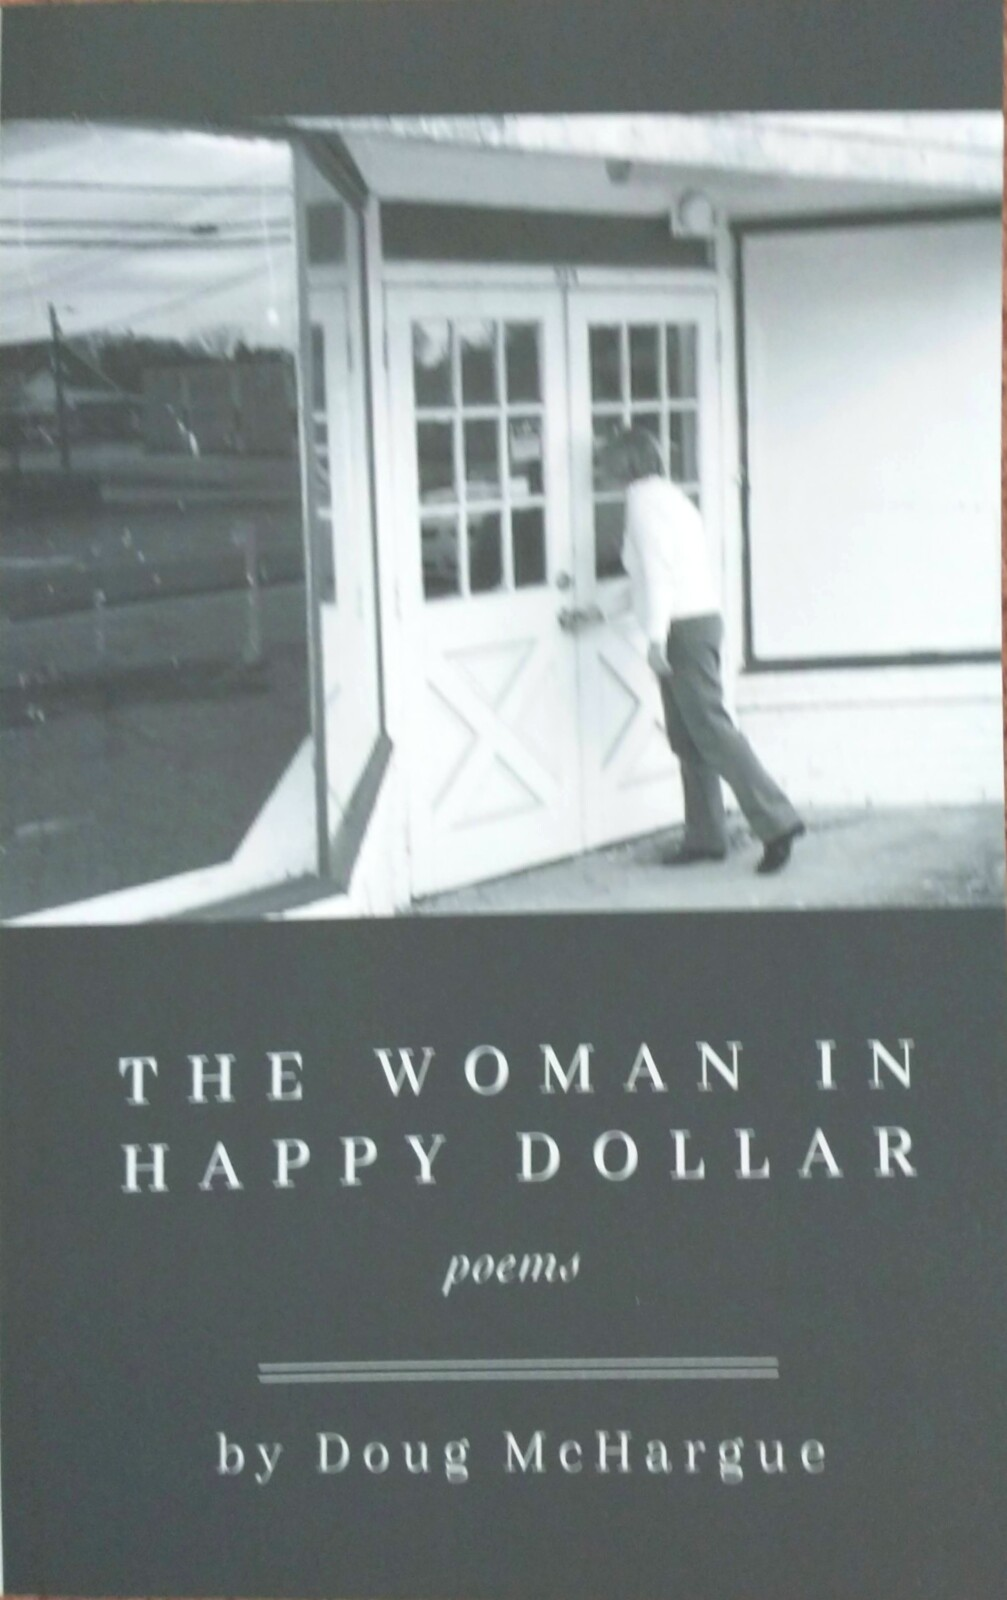 The Woman in Happy Dollar by Doug McHargue